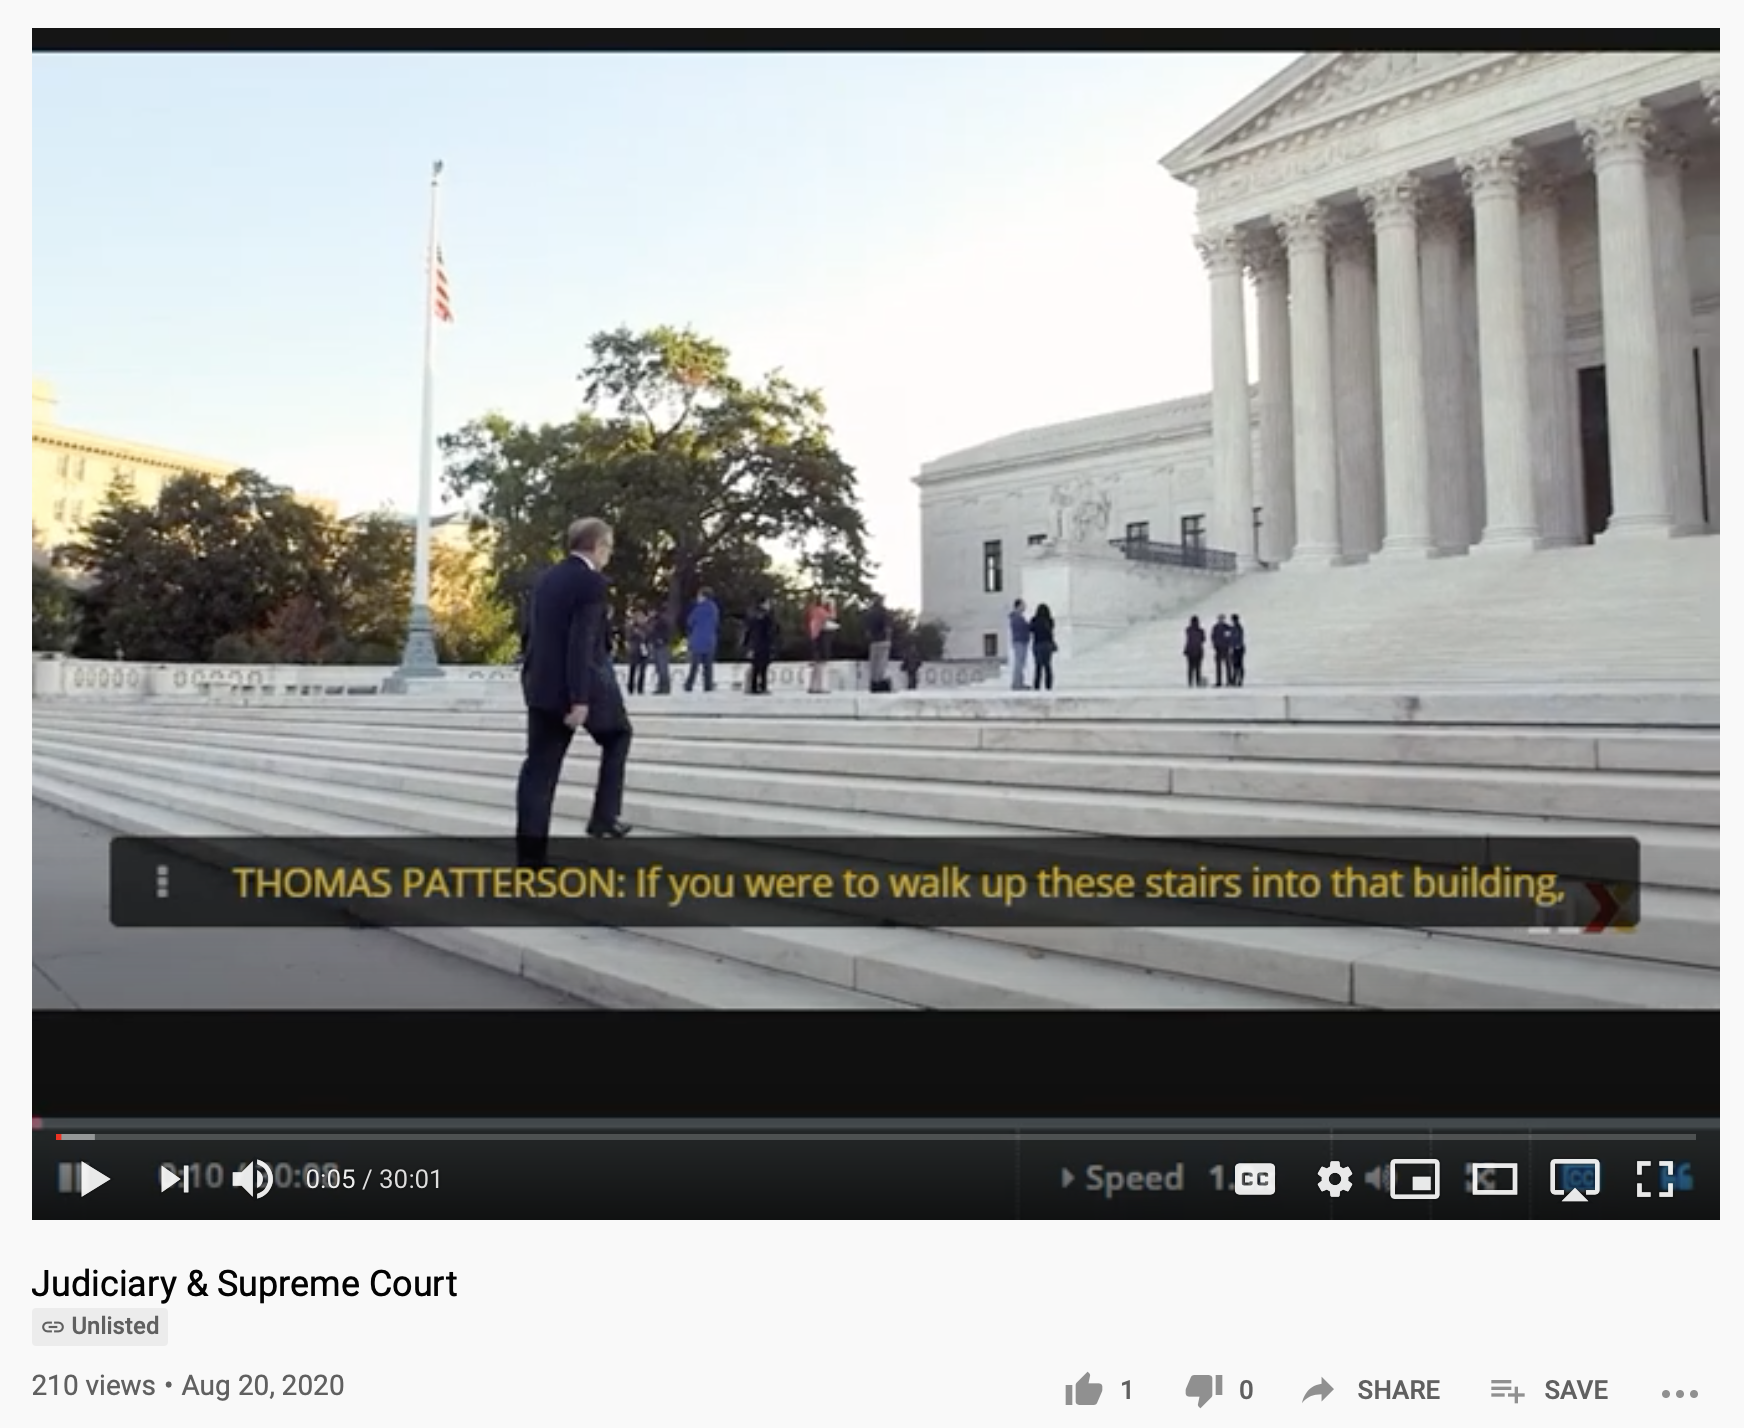 Video lecture by Harvard Professor, Thomas Patterson, on Judiciary & Supreme Court available on YouTube and his HarvardX/EdX page.